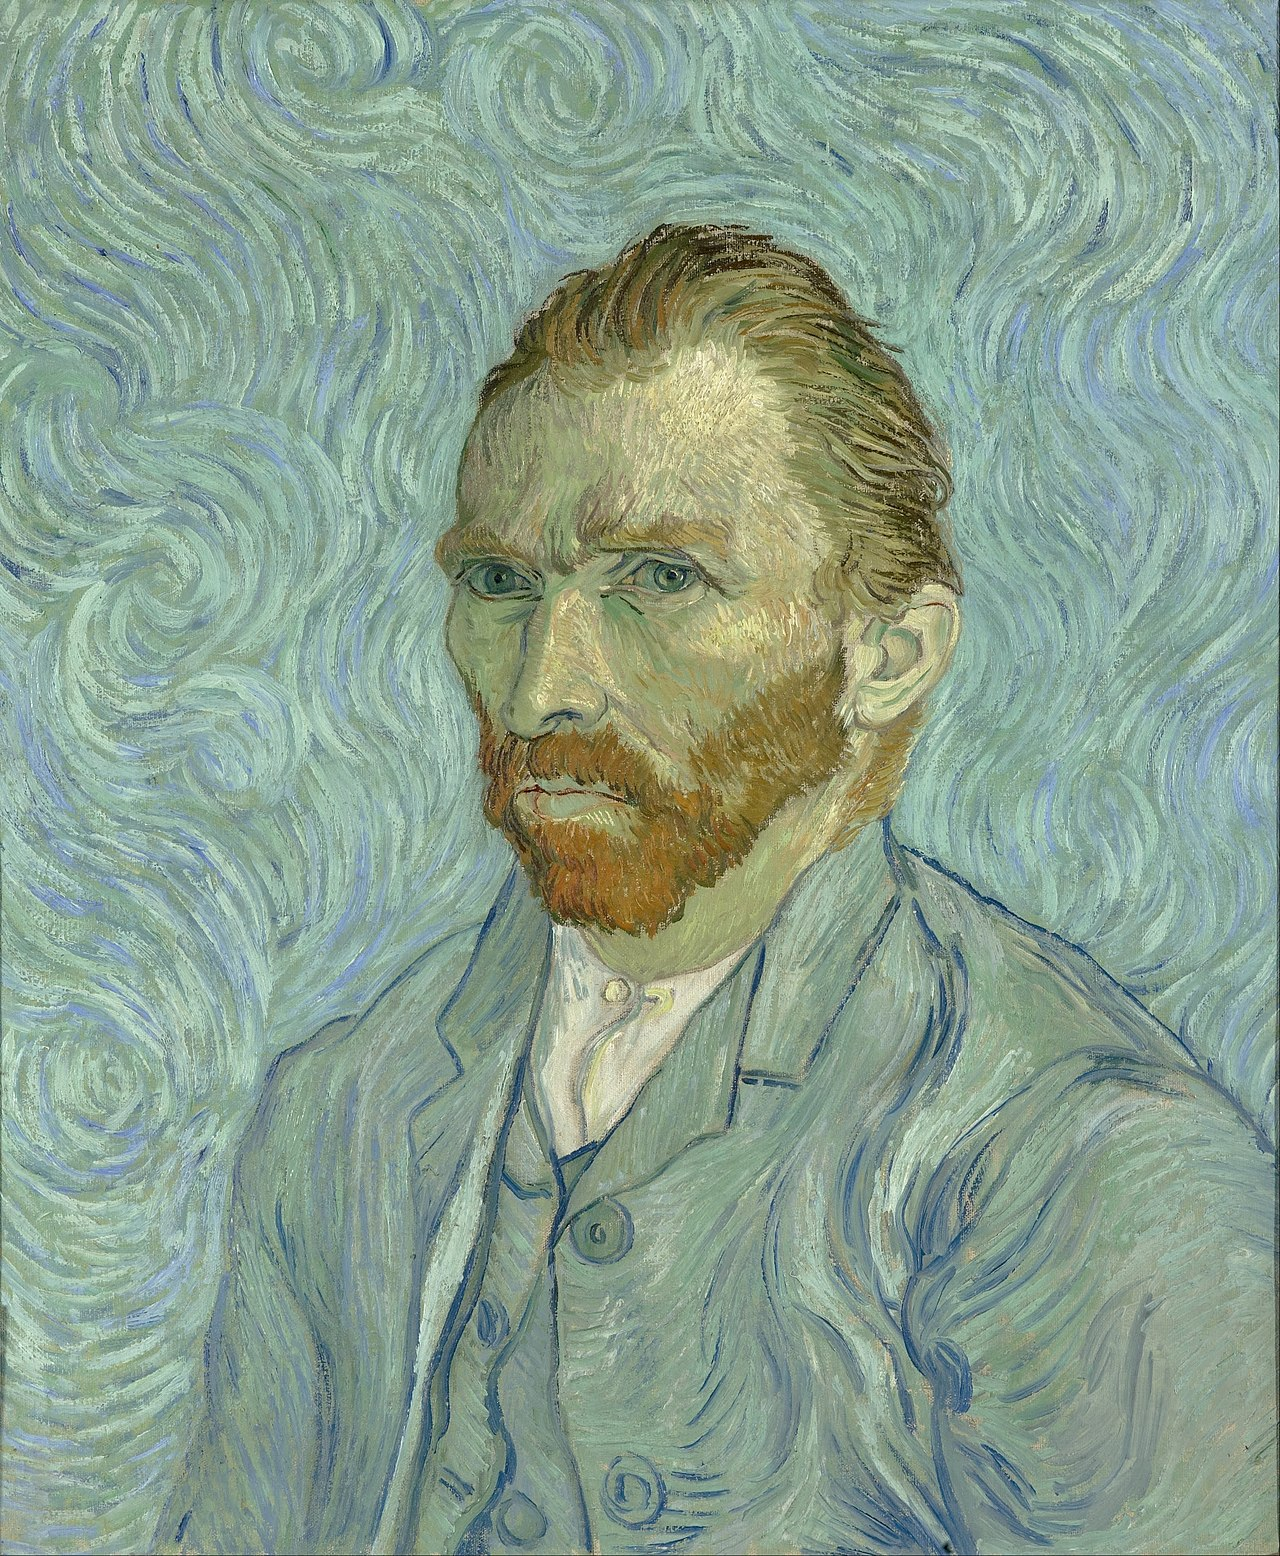 https://media.thisisgallery.com/wp-content/uploads/2018/12/gogh_15.jpg